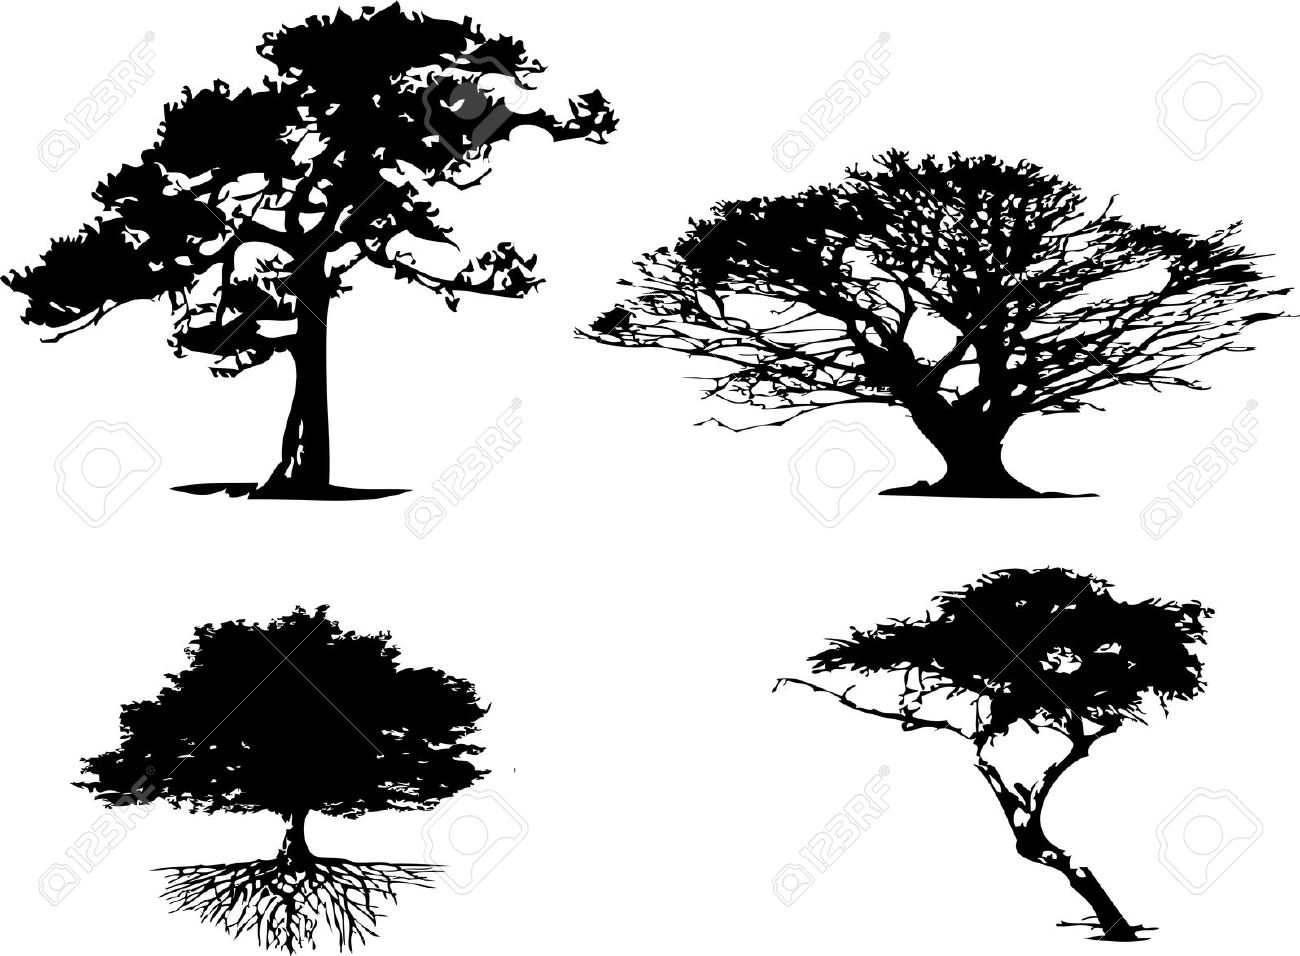 4 Different Types Of Tree Silhouette Royalty Free Cliparts.